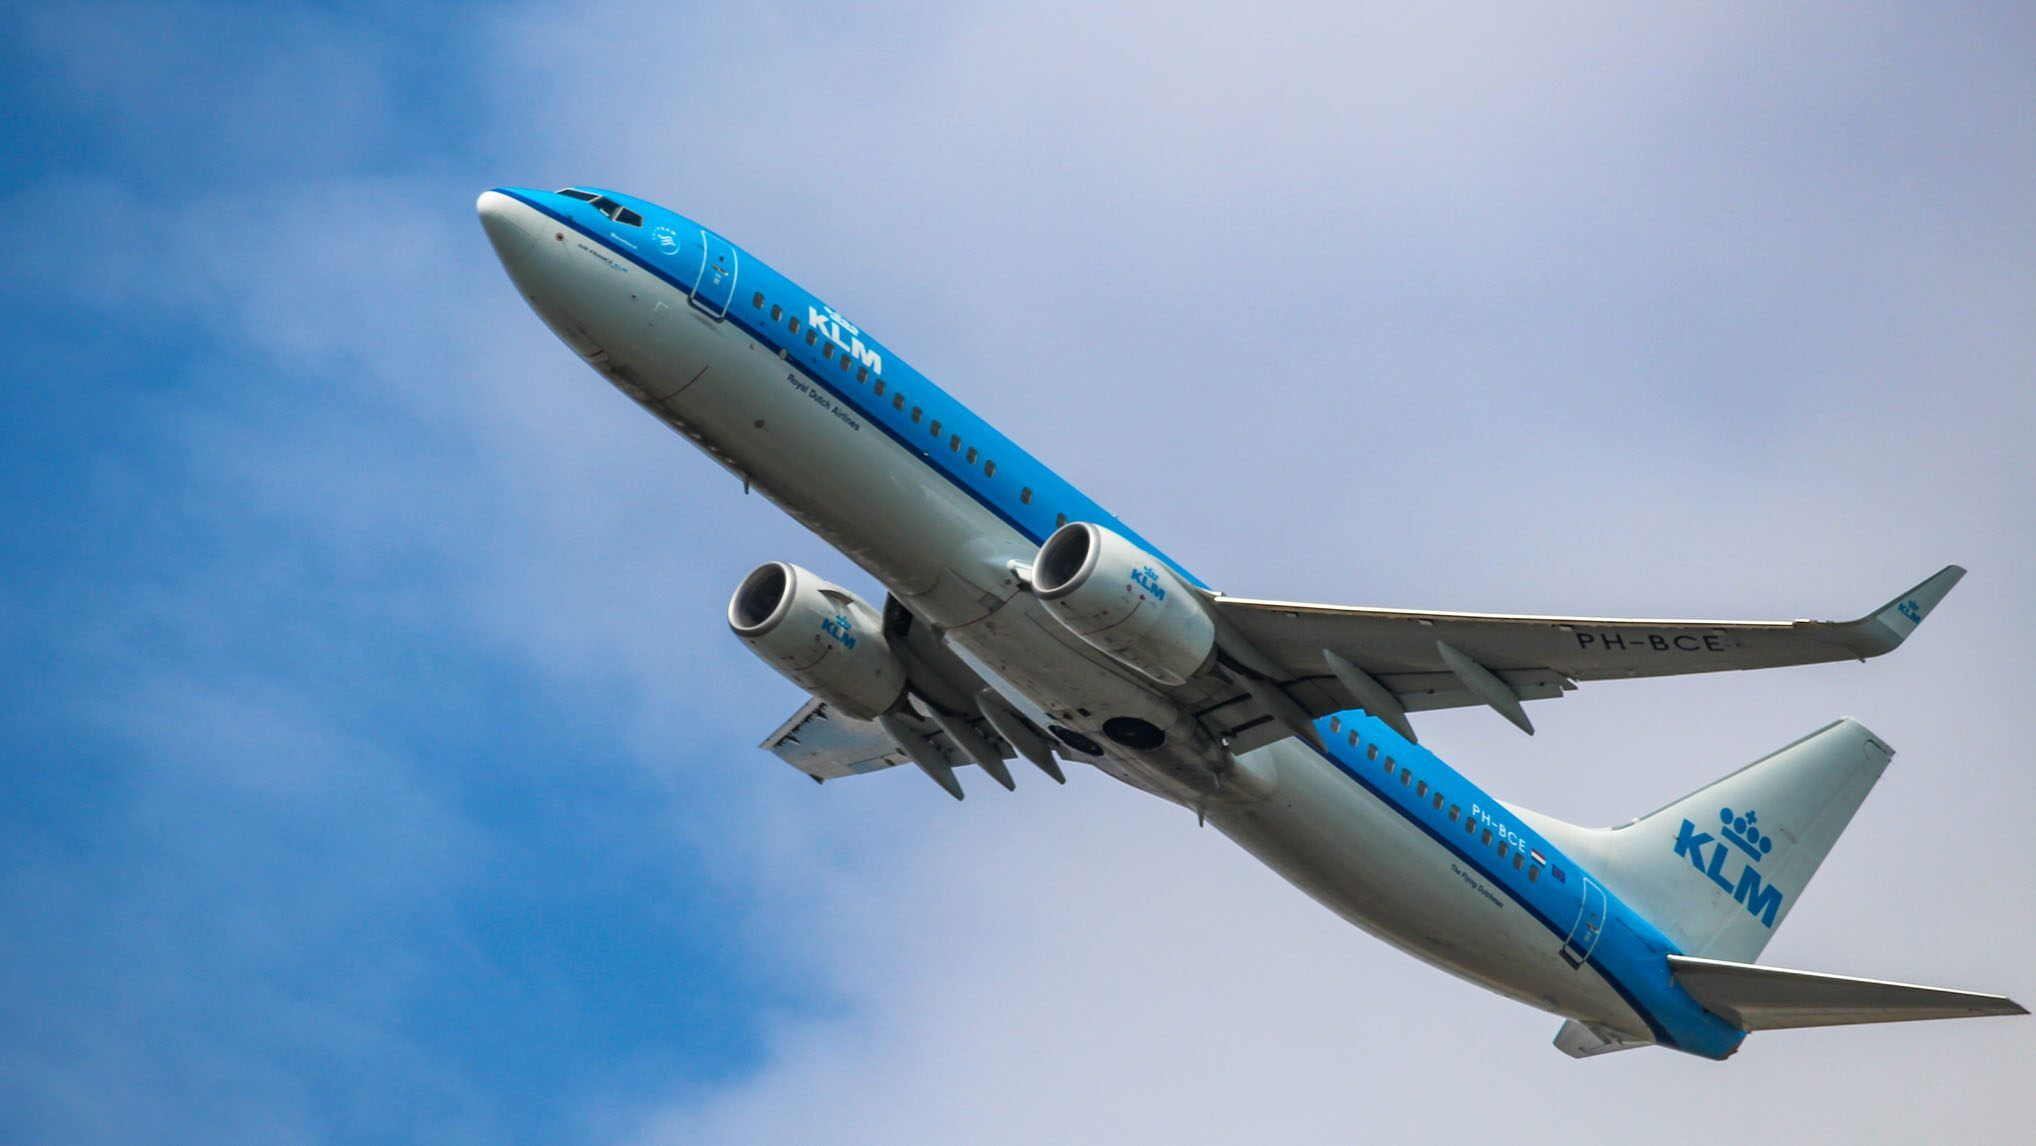 Klm Passengers Spend 11 Hours In The Air Going Nowhere Thanks To